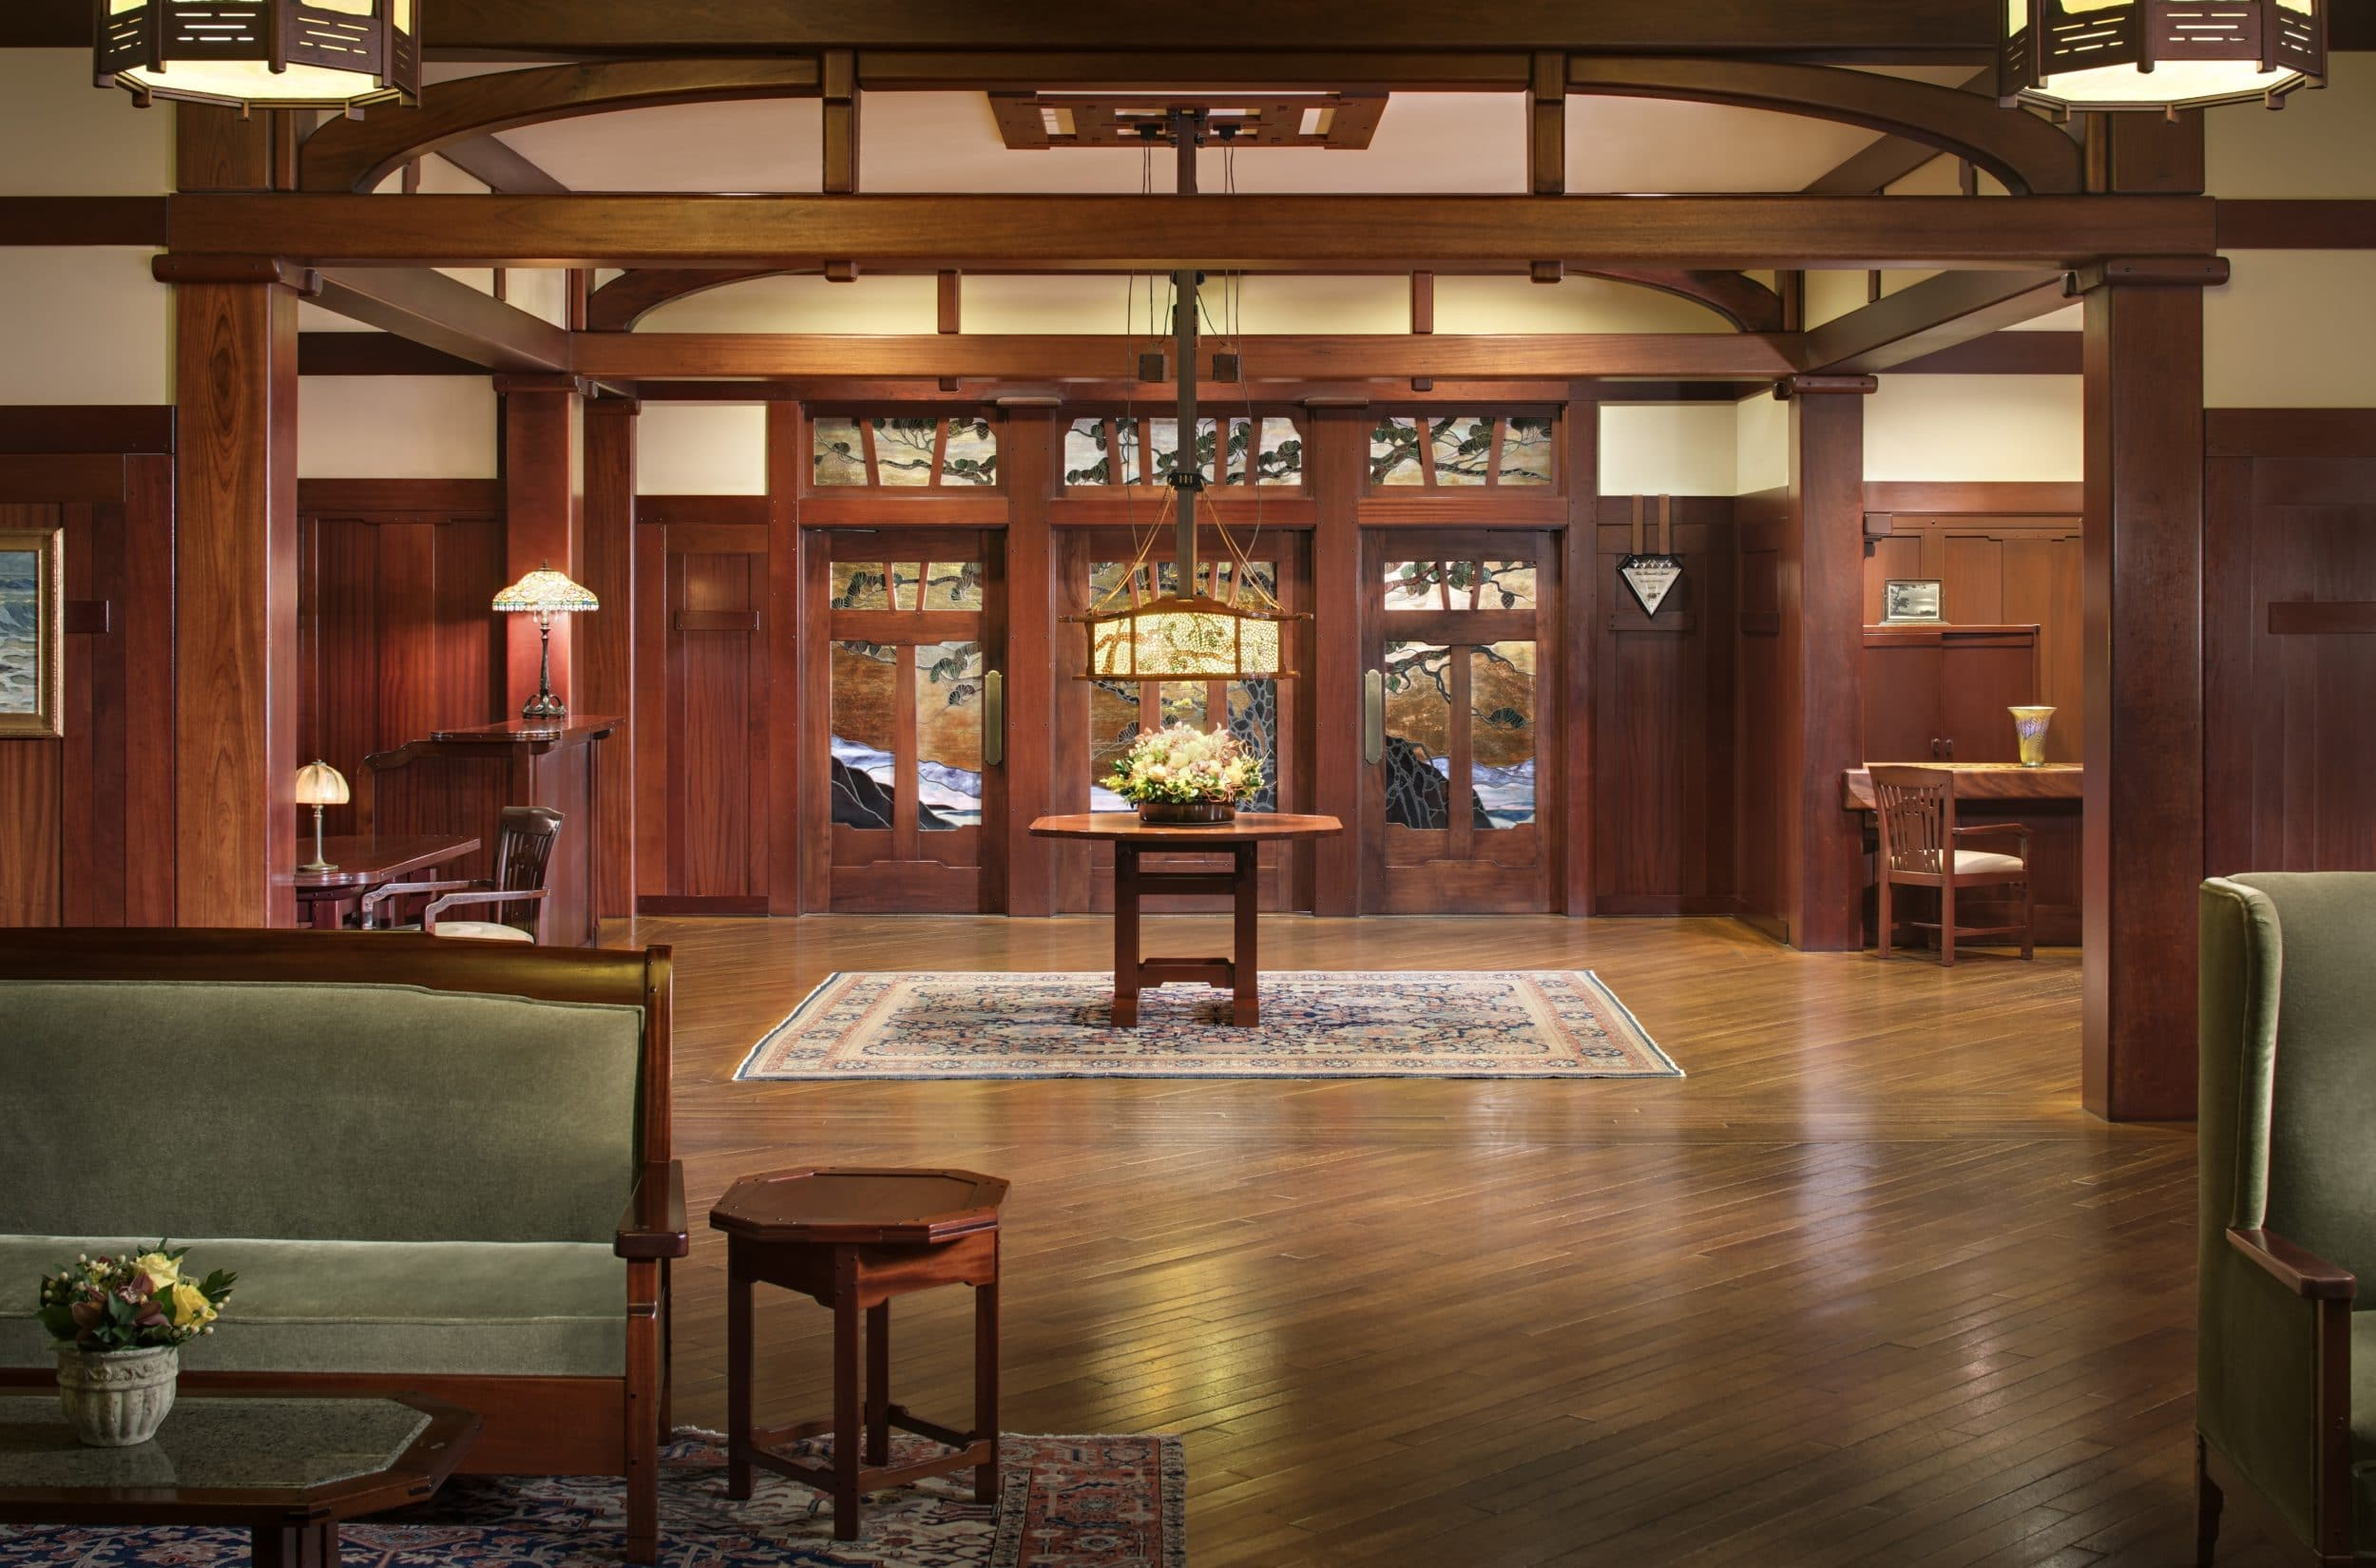 The Lodge at Torrey Pines Craftsman-style lobby with wood beam arches and stained glass.